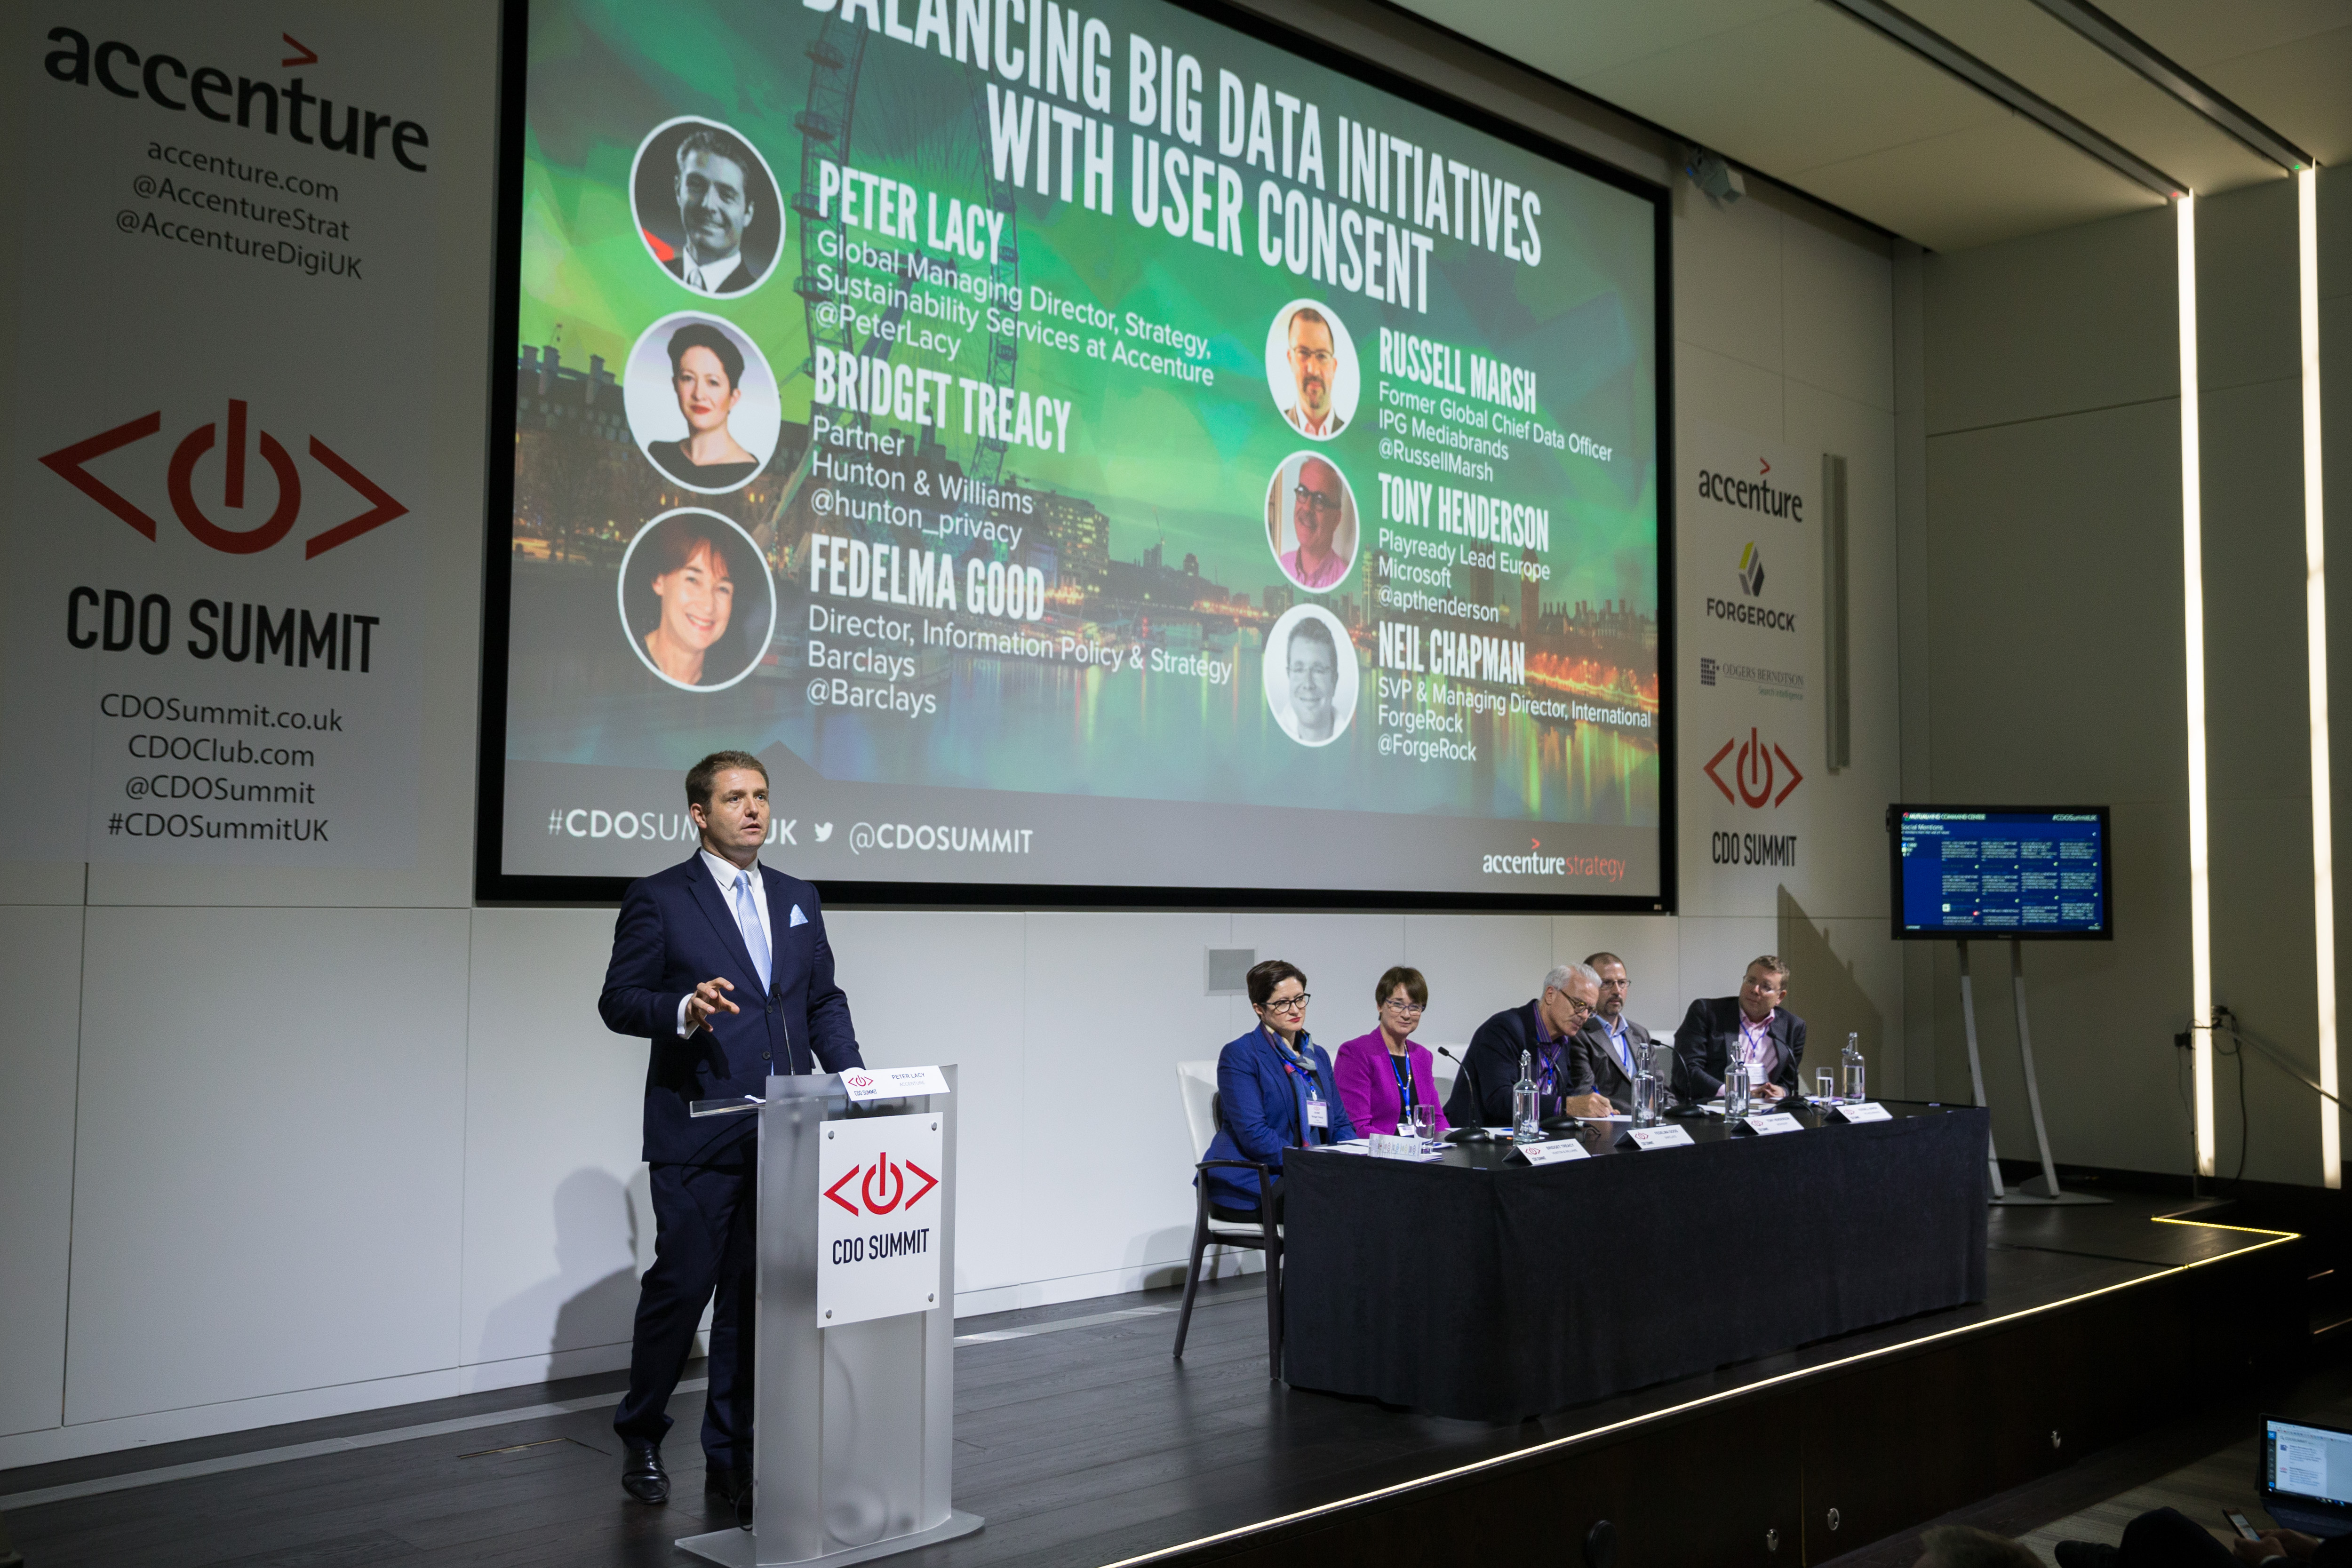 BigData_CDOSummit_2015London_2